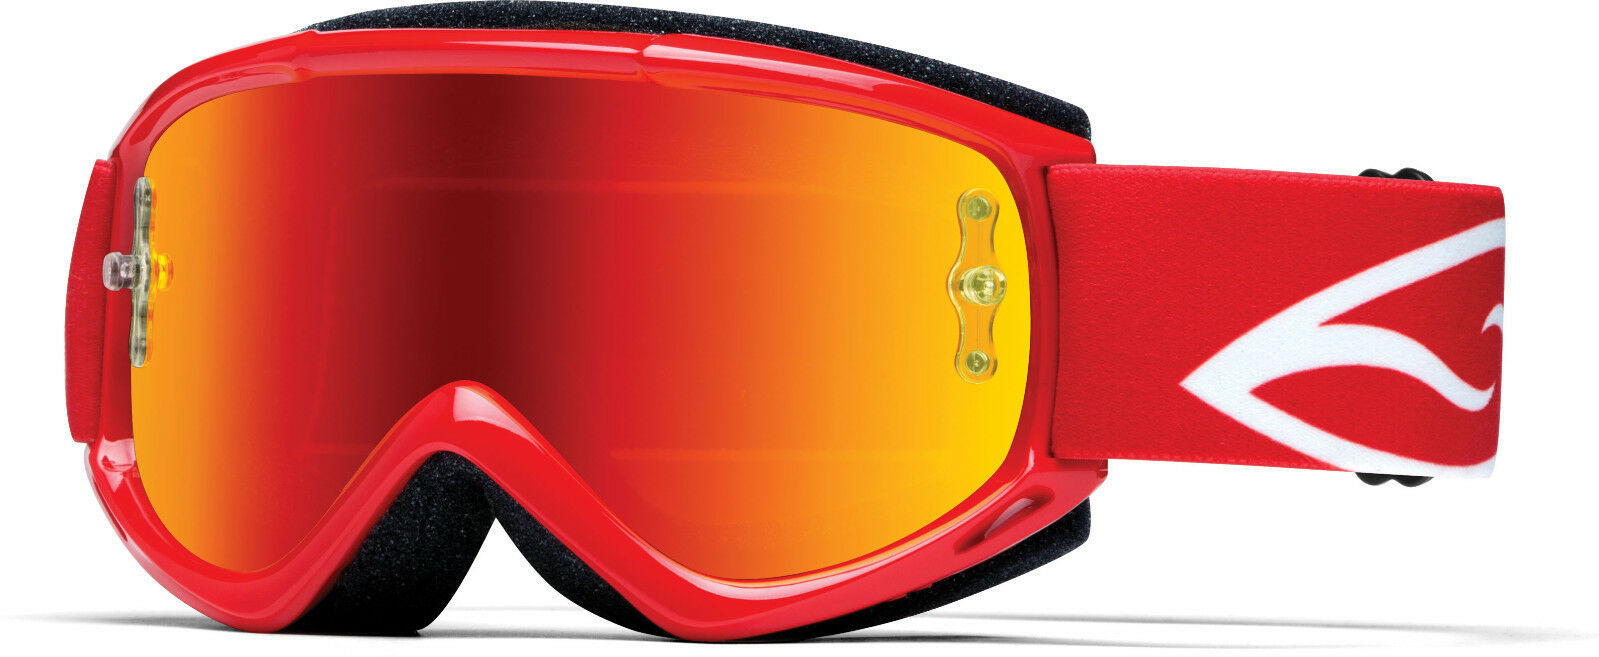 Smith Fuel Très 1  Max M MTB V. T.C.Lunettes CADRE red red oculaire Miroité  hastened to see